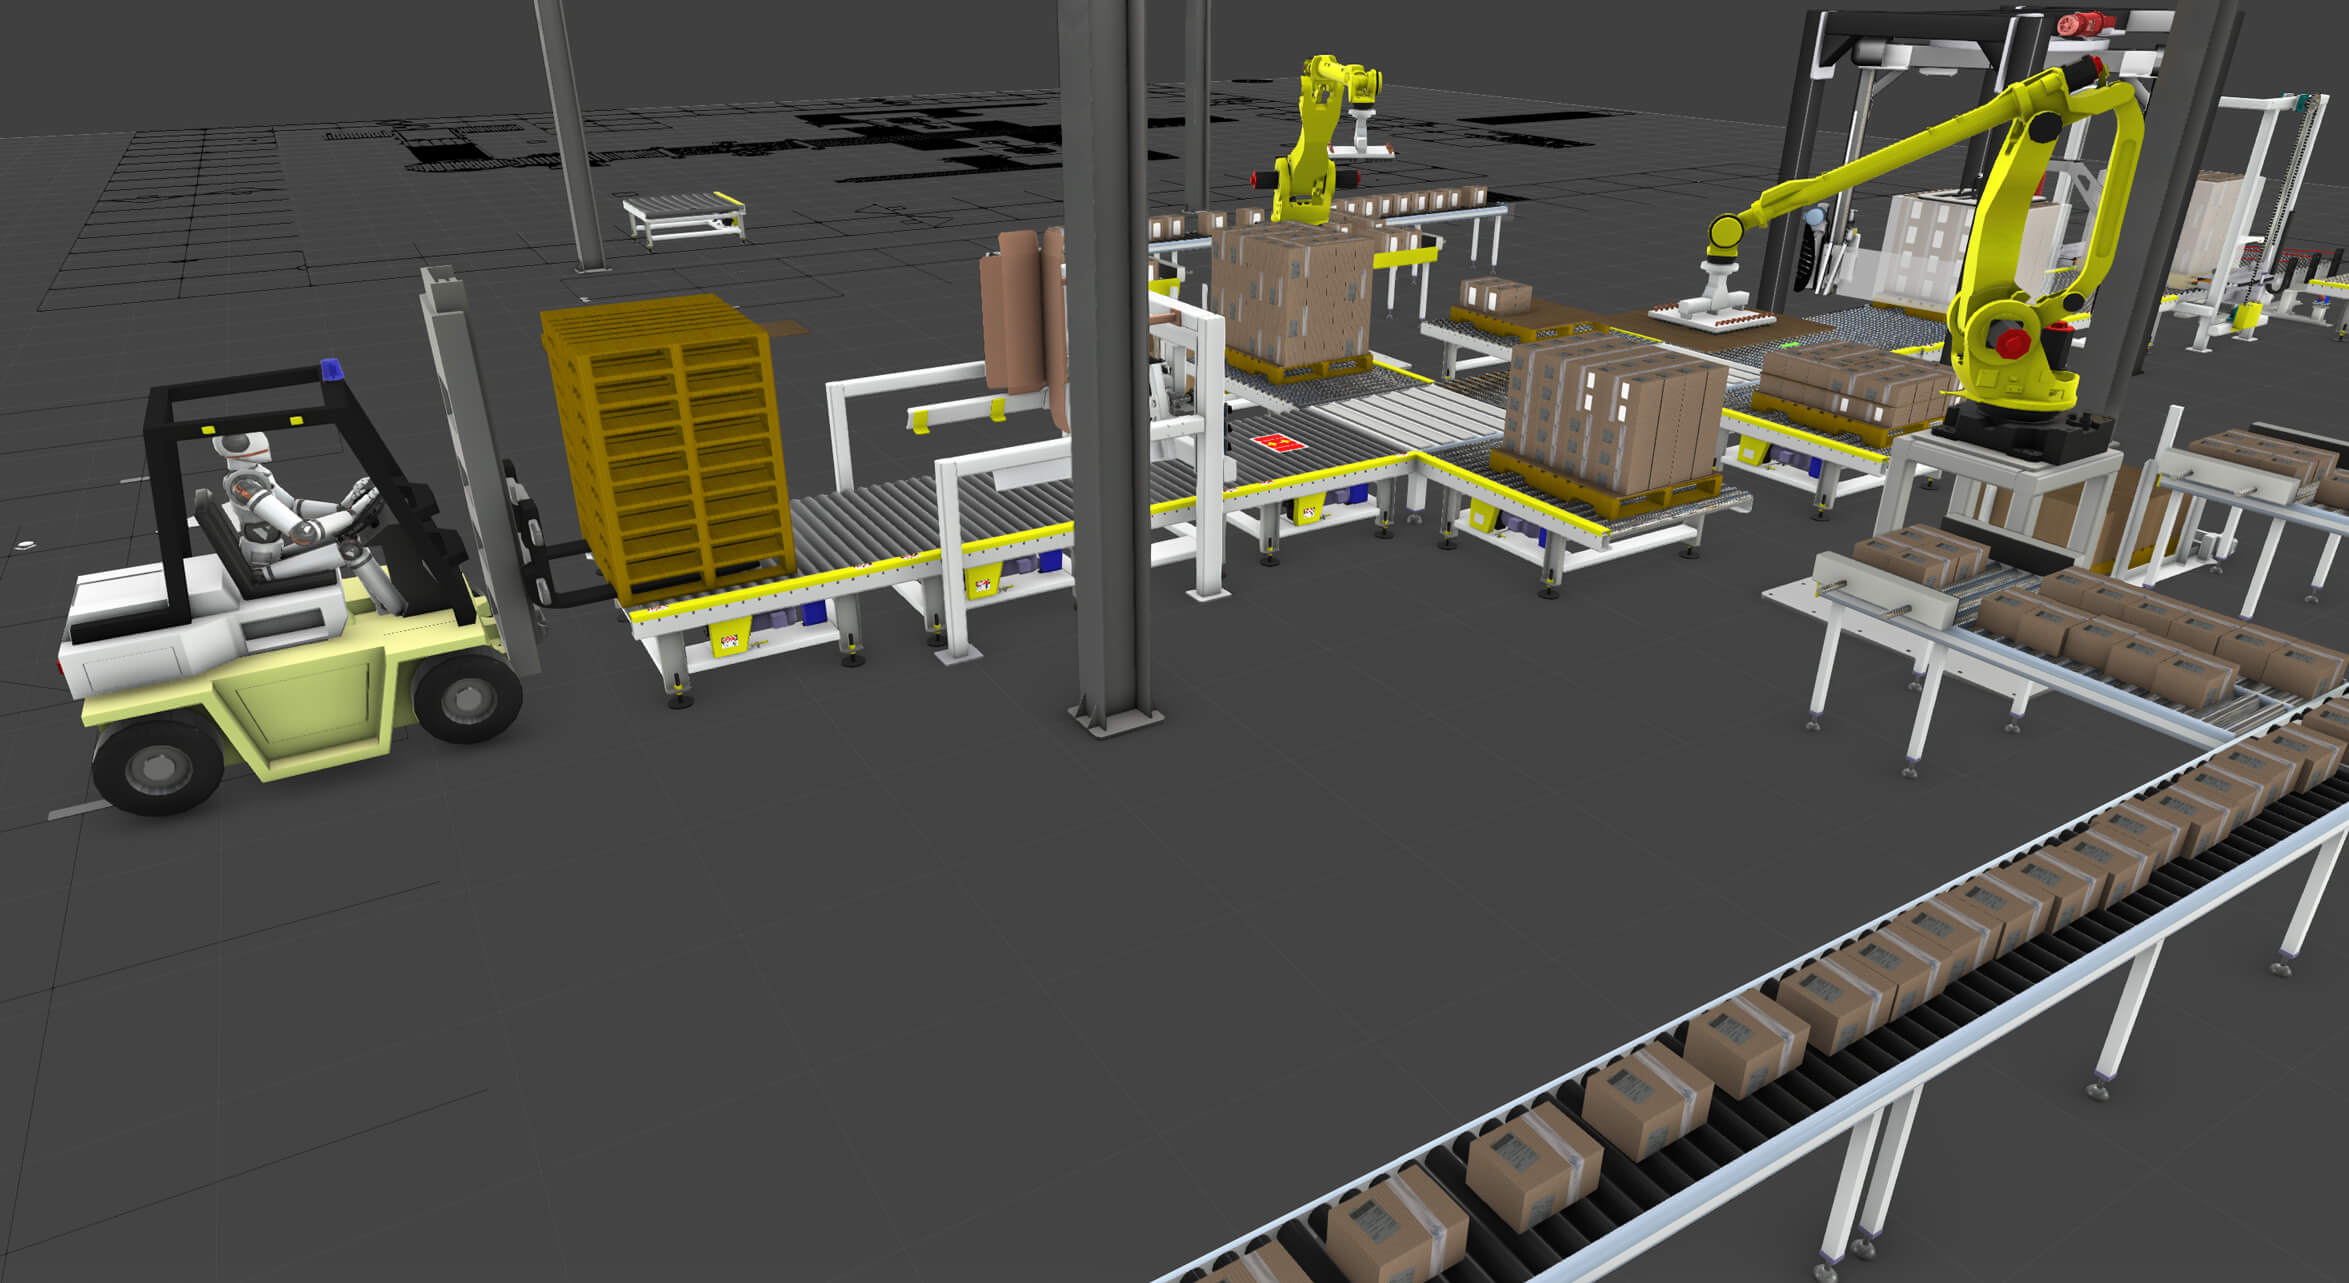 Visual Components Essentials - Our core 3D manufacturing